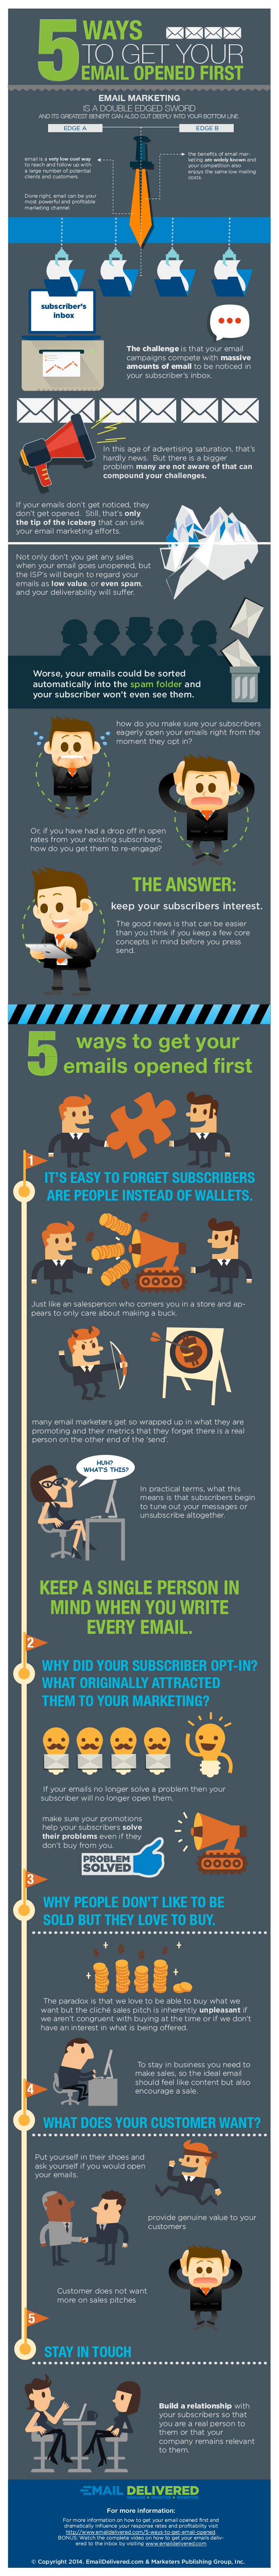 get your emails opened first-infographic